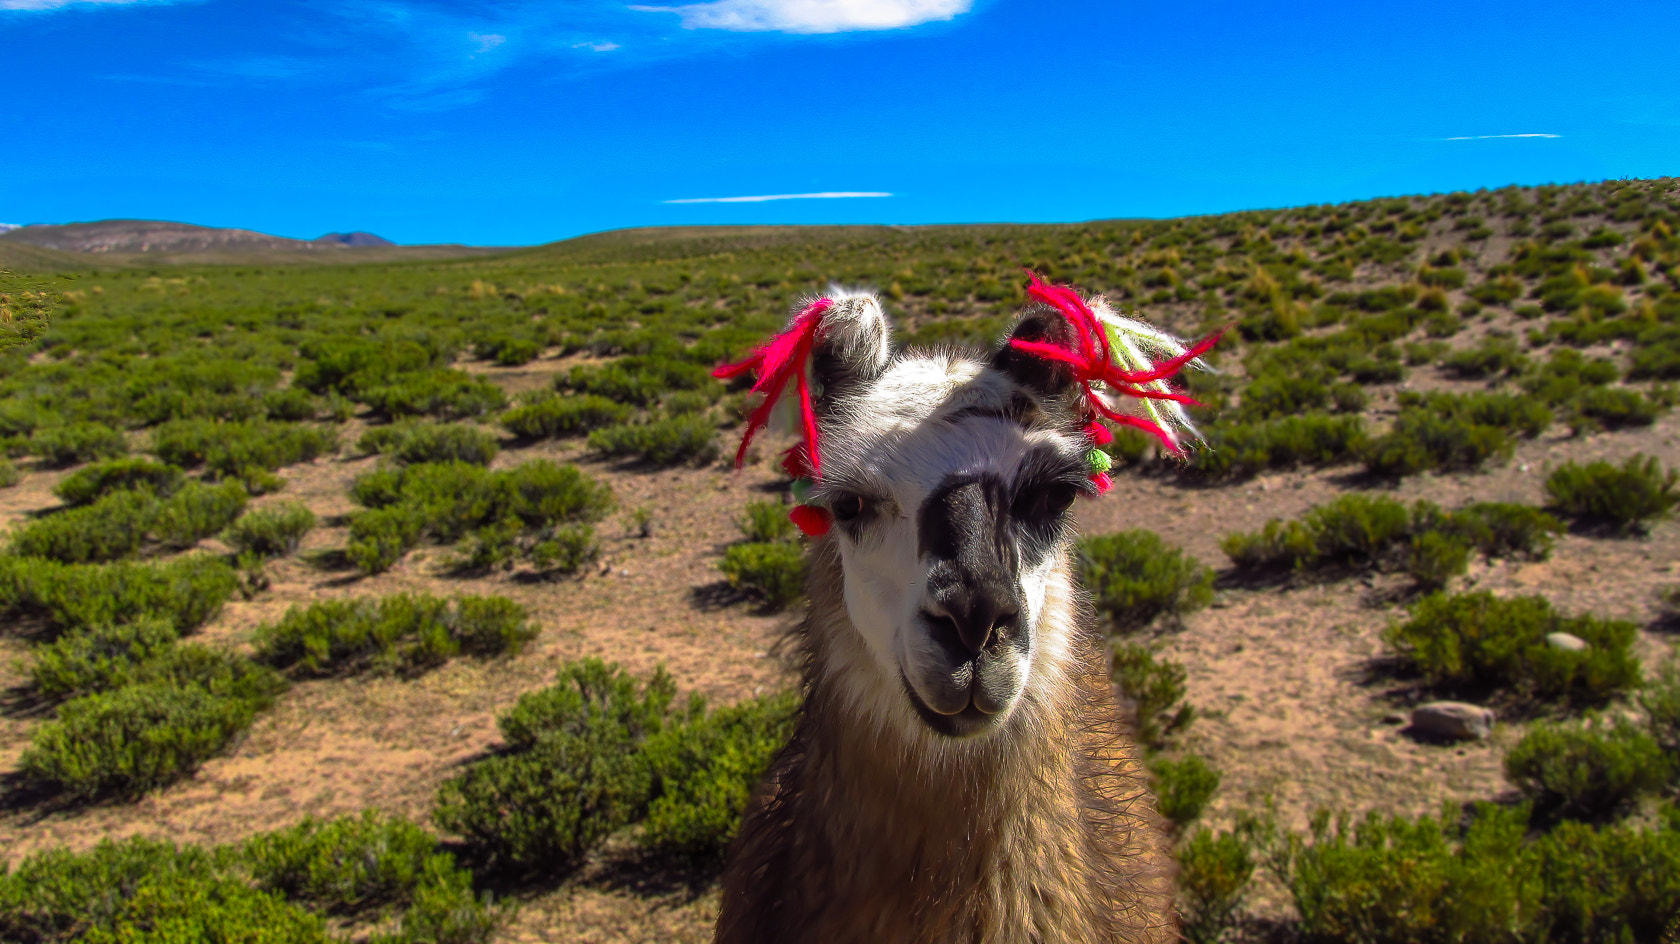 Photograph Friendly Llama by eyals  on 500px